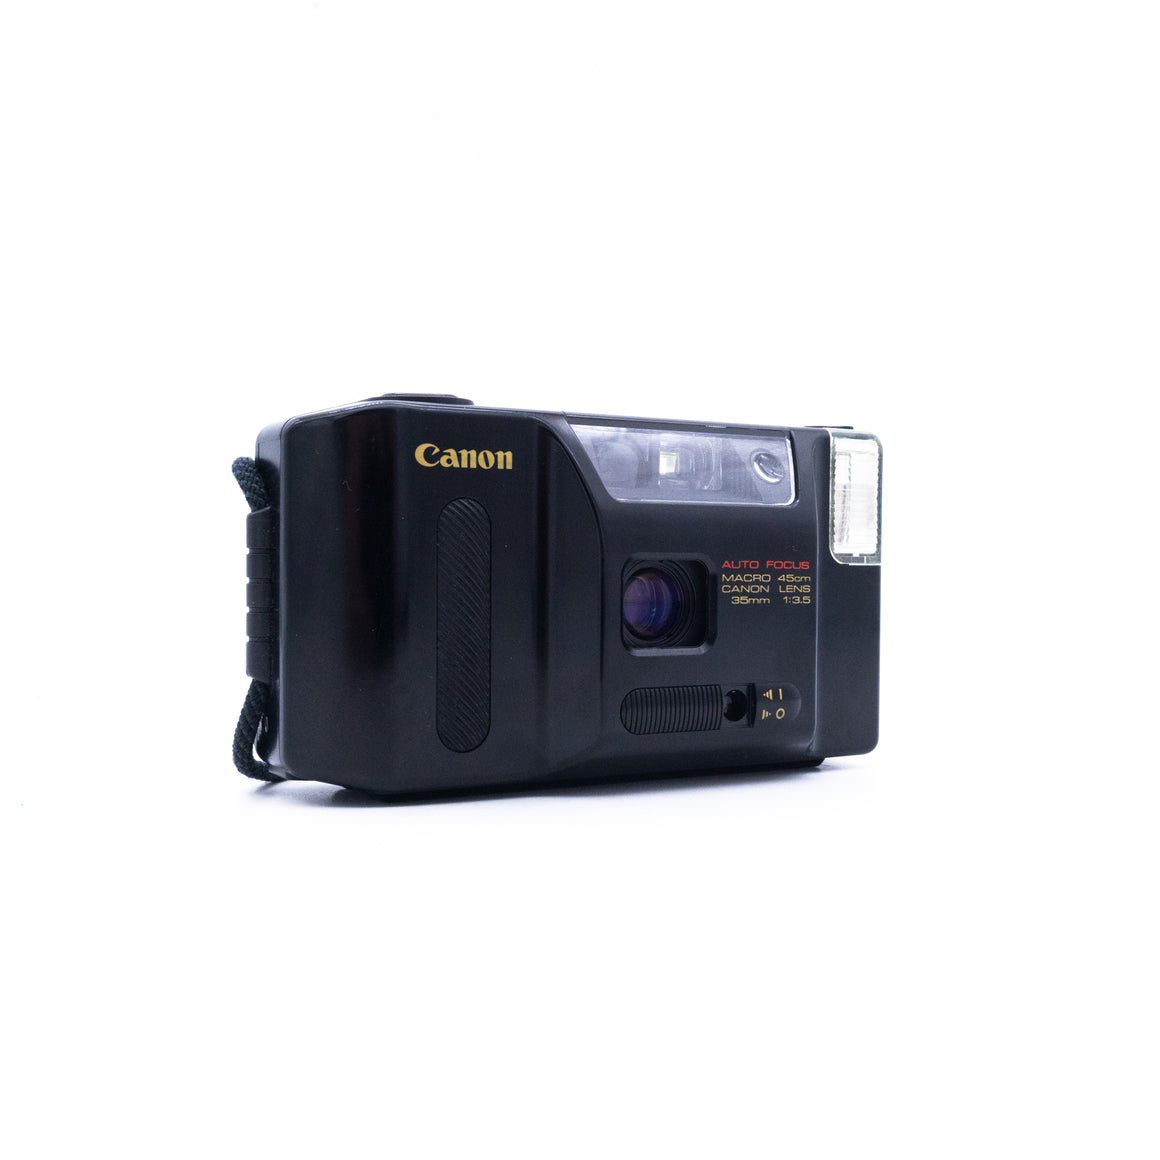 Canon Sprint Point & Shoot Camera with Canon 35mm f/3.5 Lens